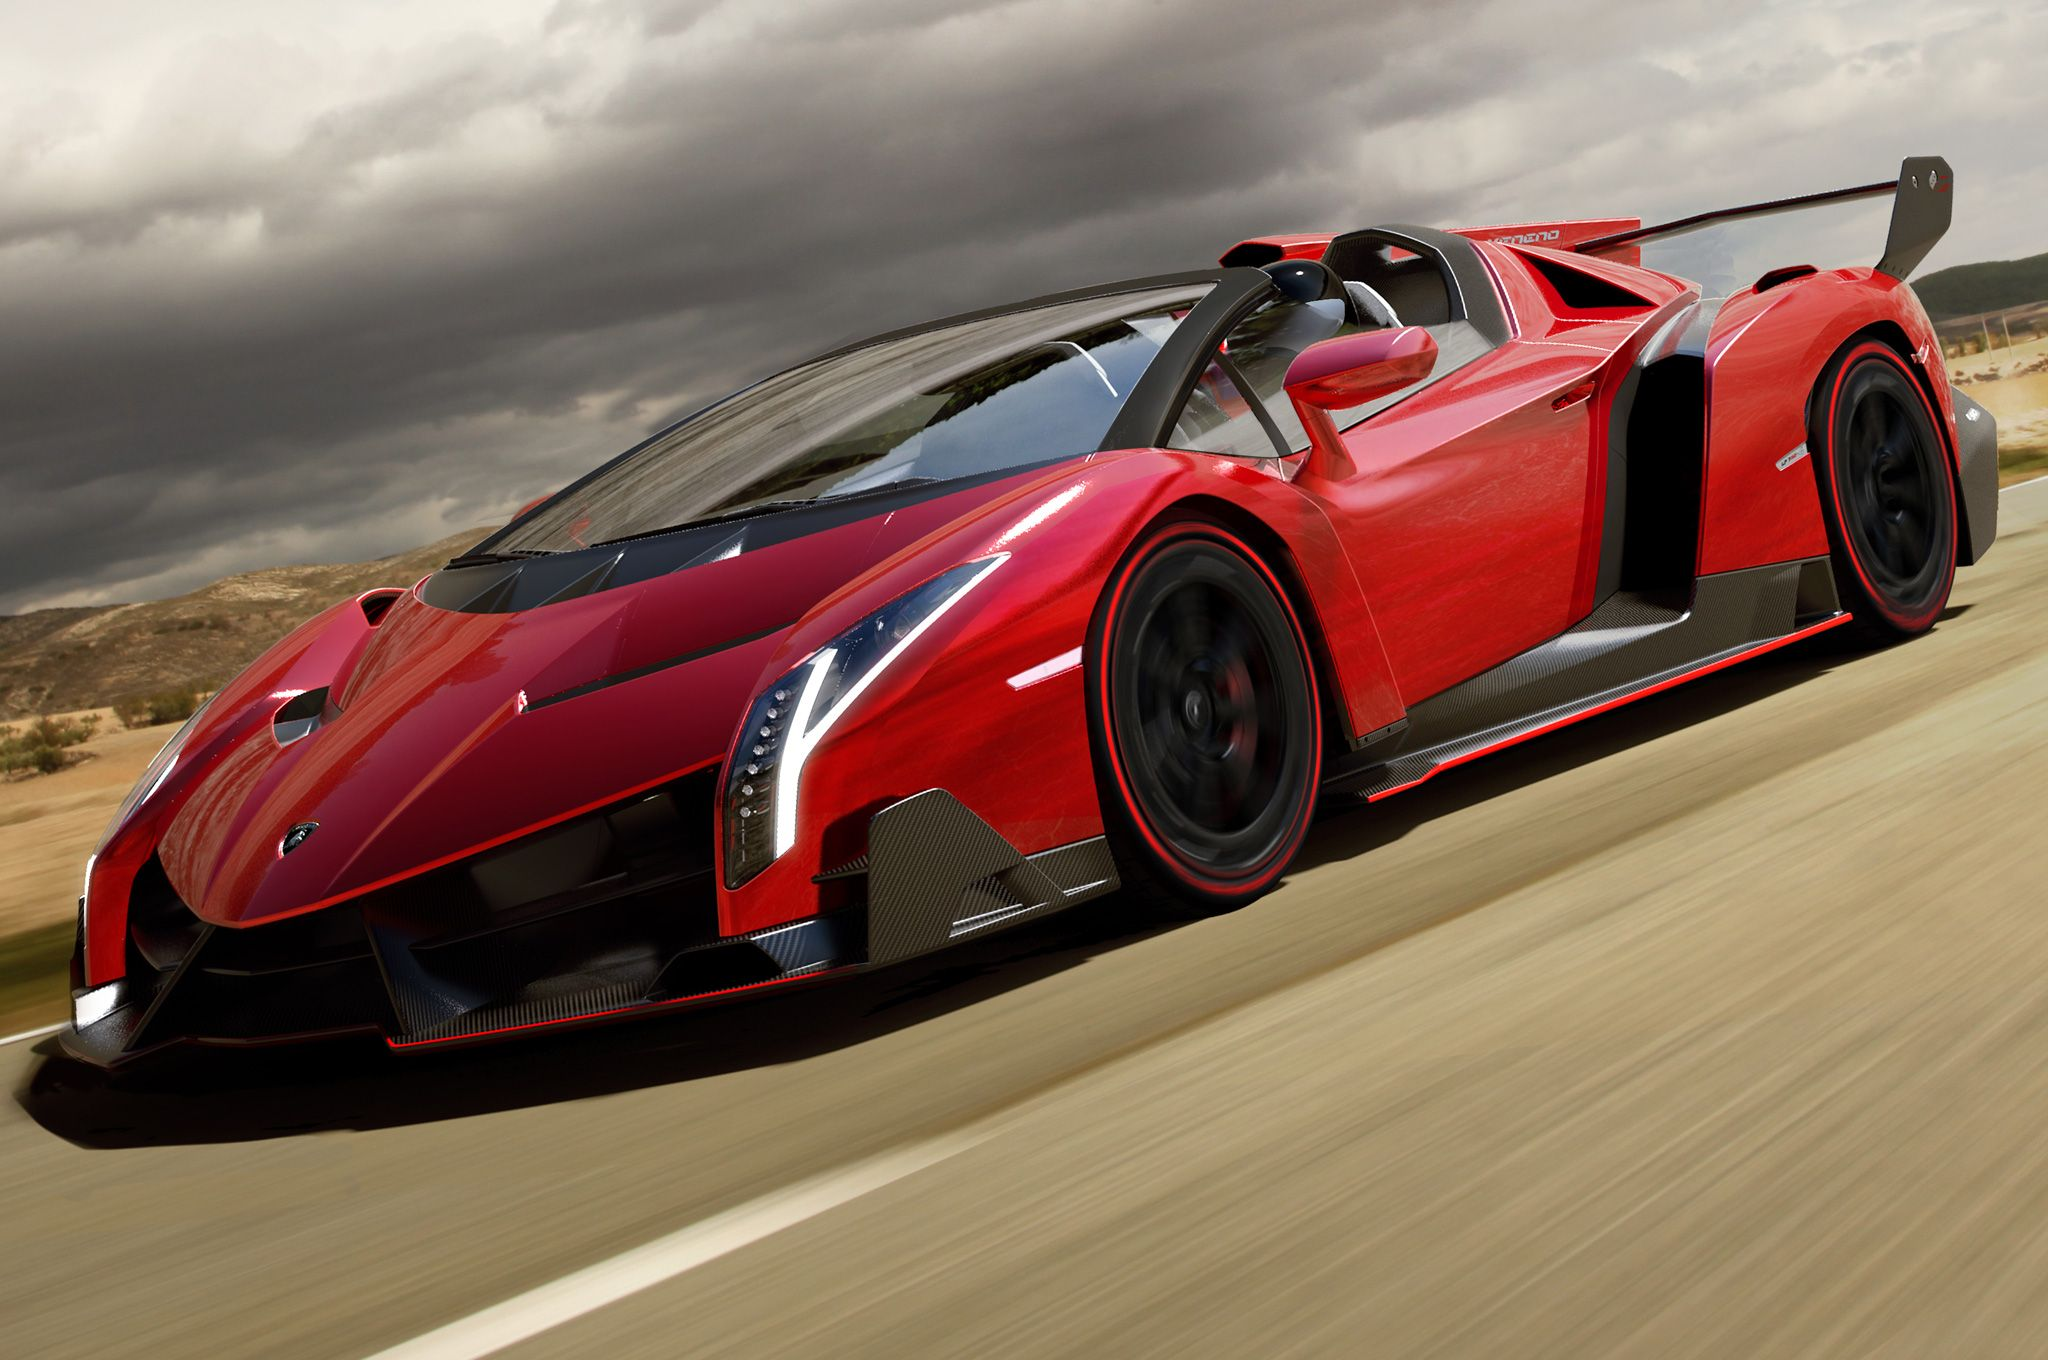 Top 10 most expensive cars in the world 2014 top 10 most expensive cars in the world 2014 lamborghini veneno roadster country of origin italy engine